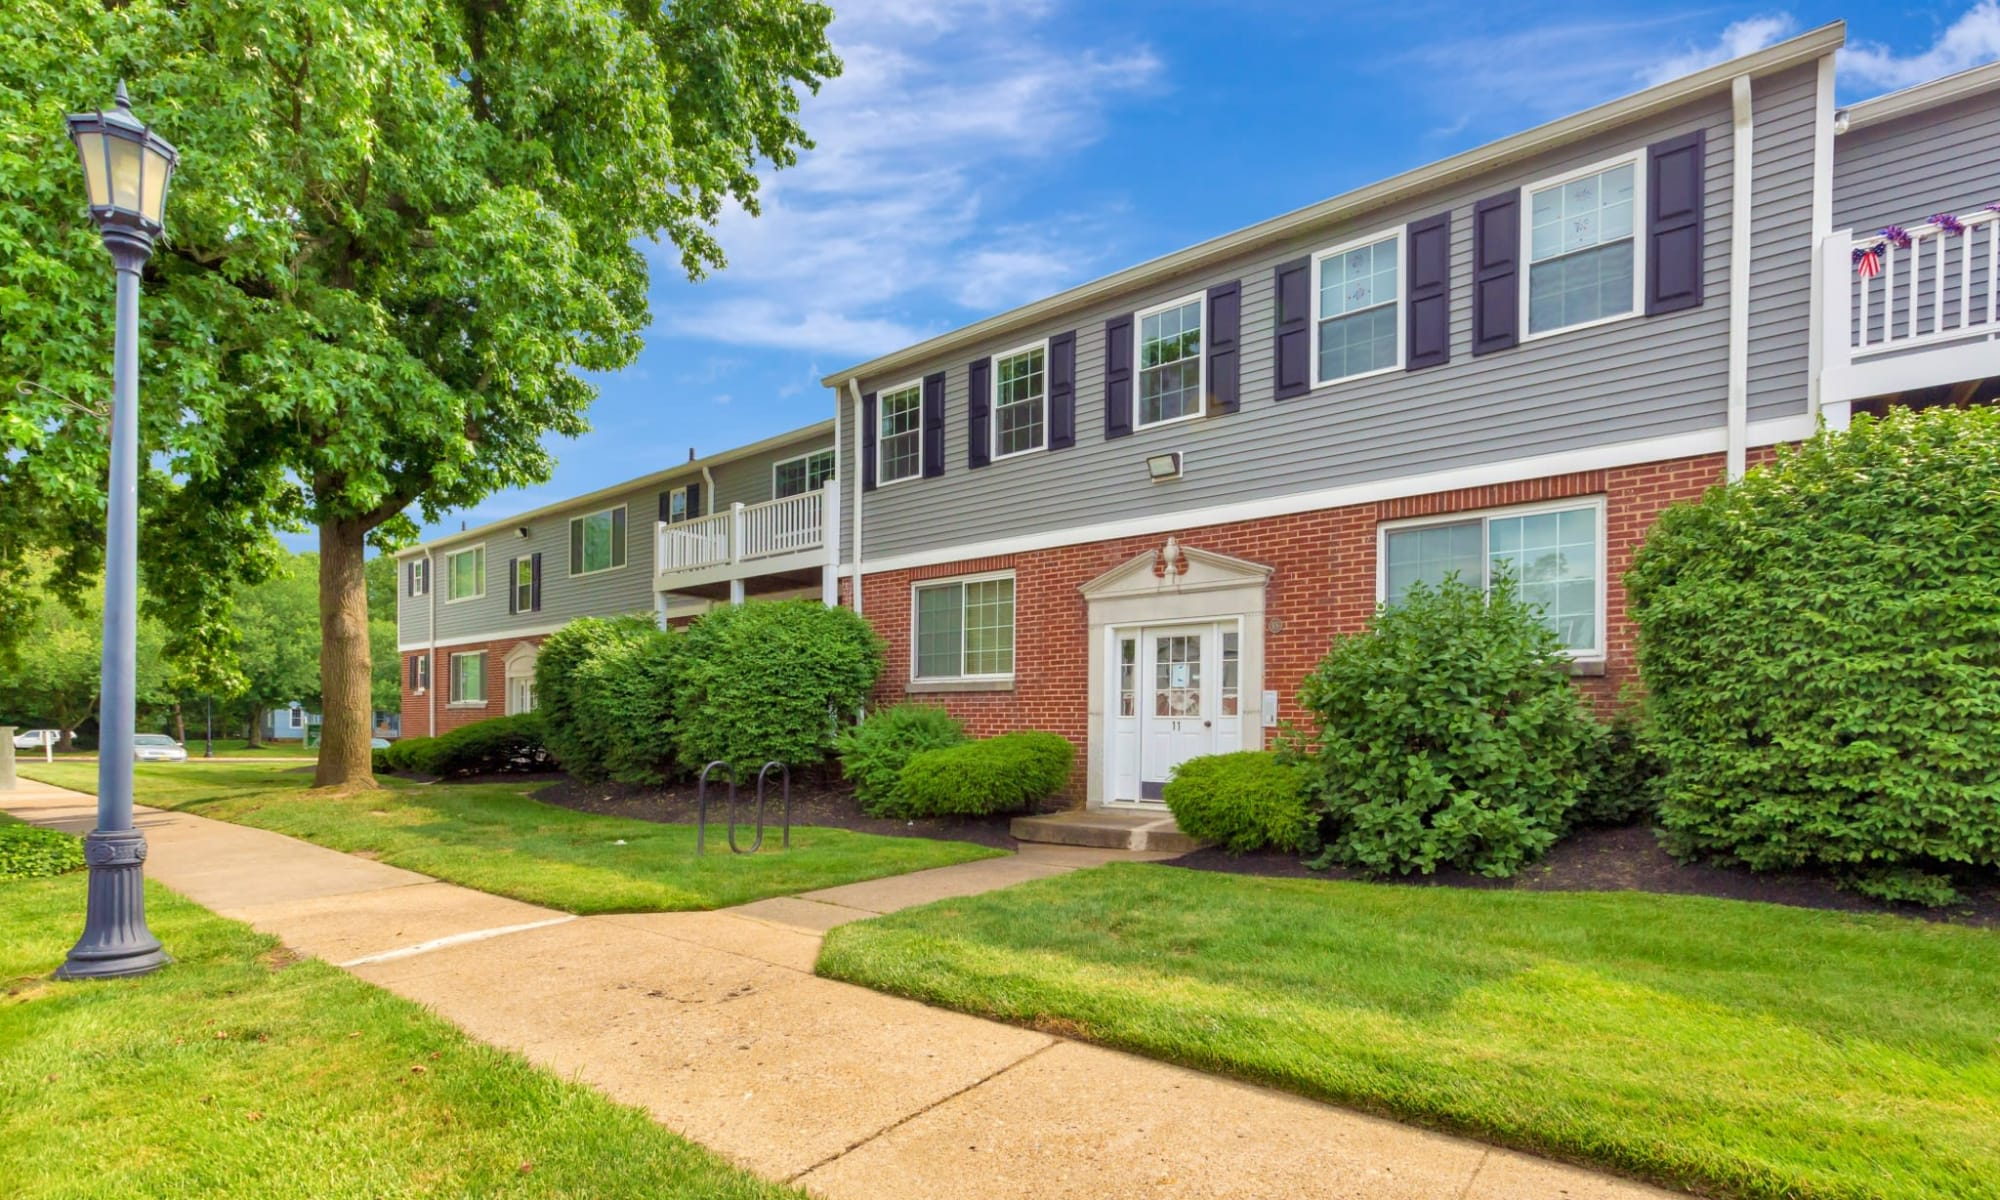 Apartments in Mount Holly, NJ